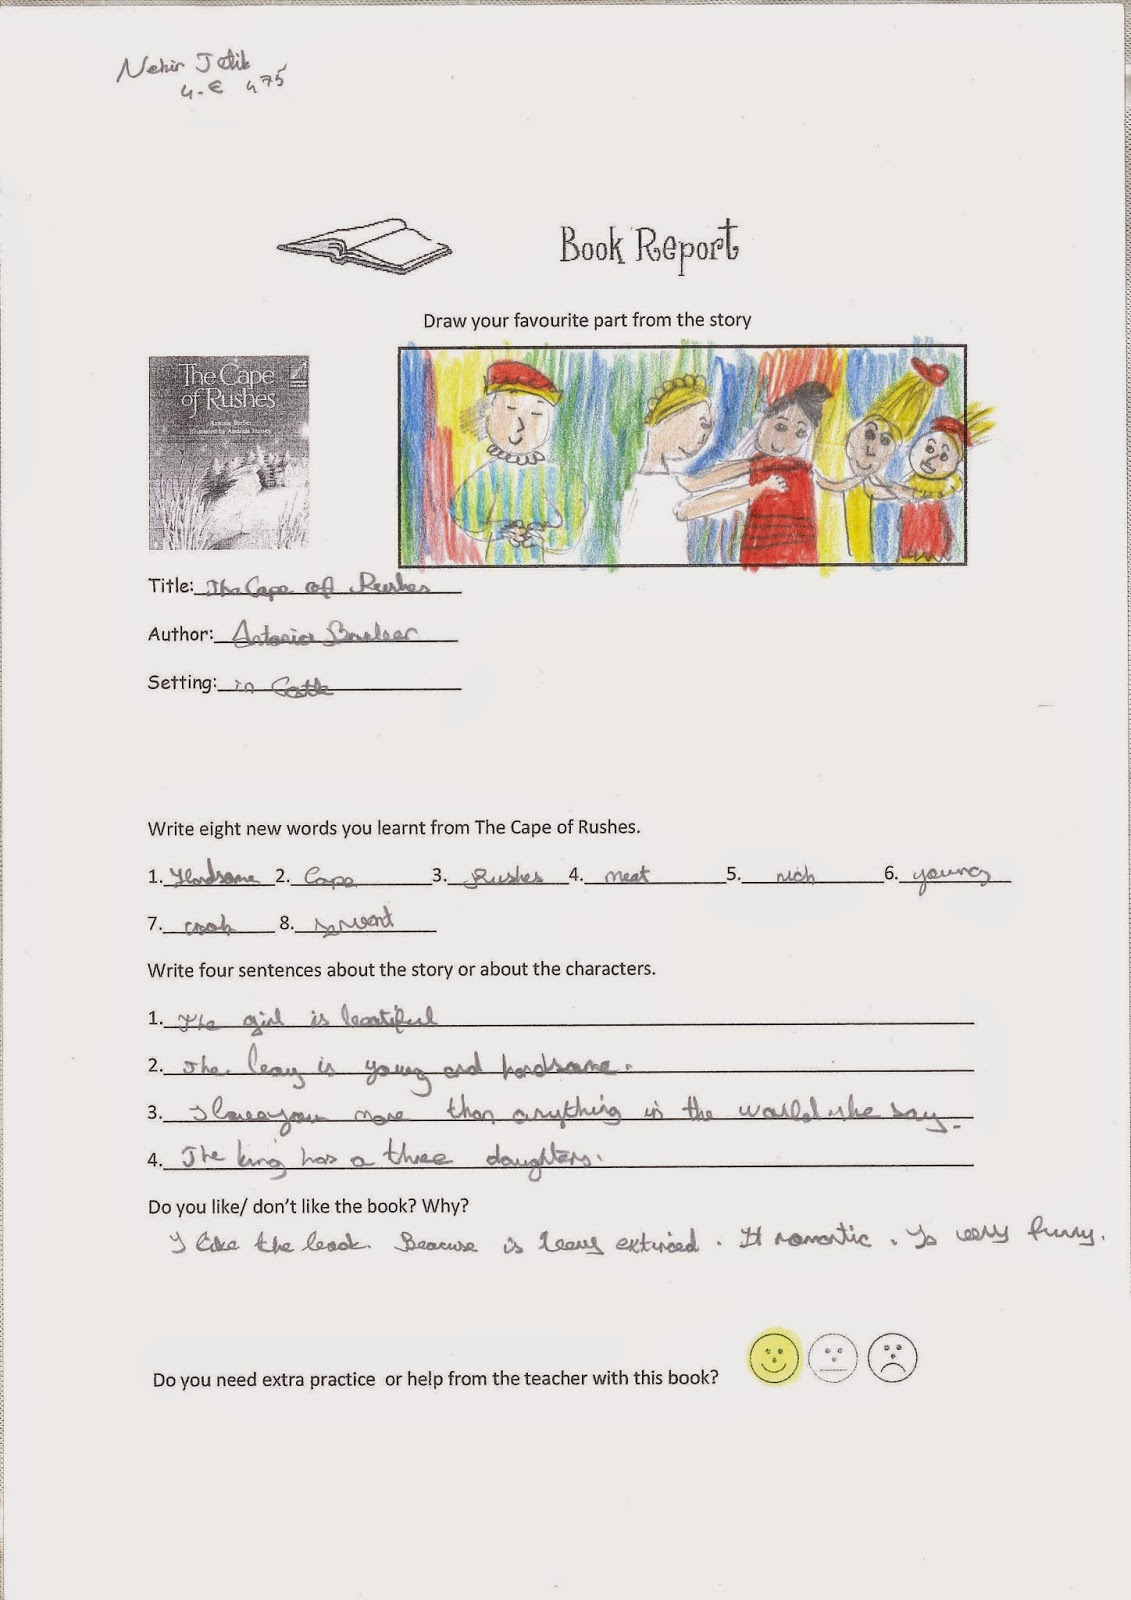 Book Report Worksheet   Book Studies   Pinterest   Teaching     Scholastic